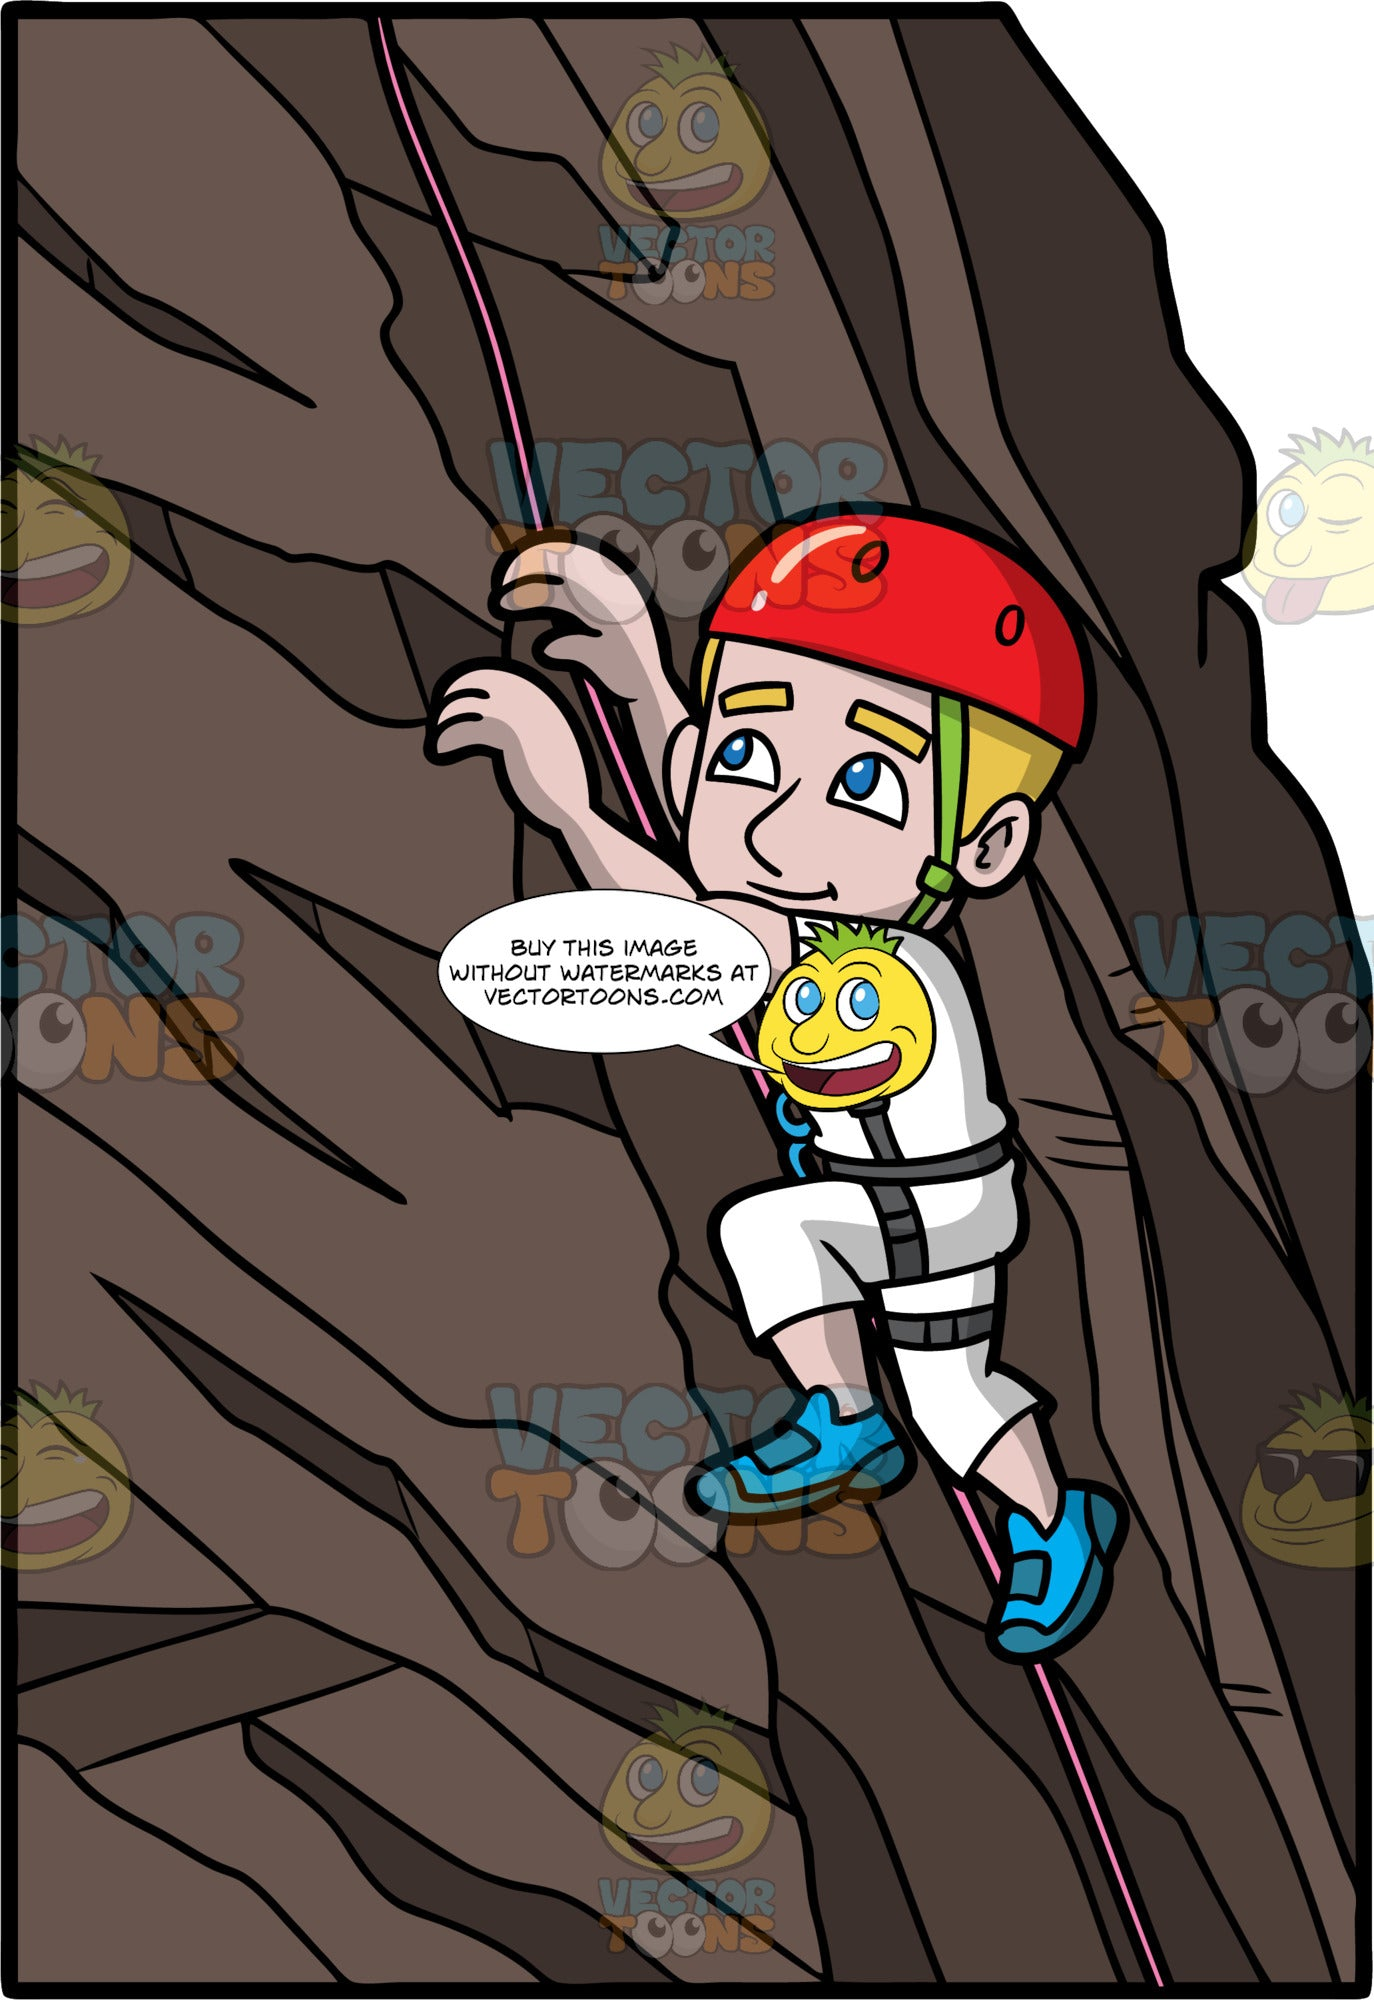 A Man Climbing Up A Rock Wall. A man with dark blonde hair and blue eyes, wearing white pants, a white shirt, blue rock climbing shoes, and a red helmet, is attached to pink rope which he uses to help him climb up a rock wall